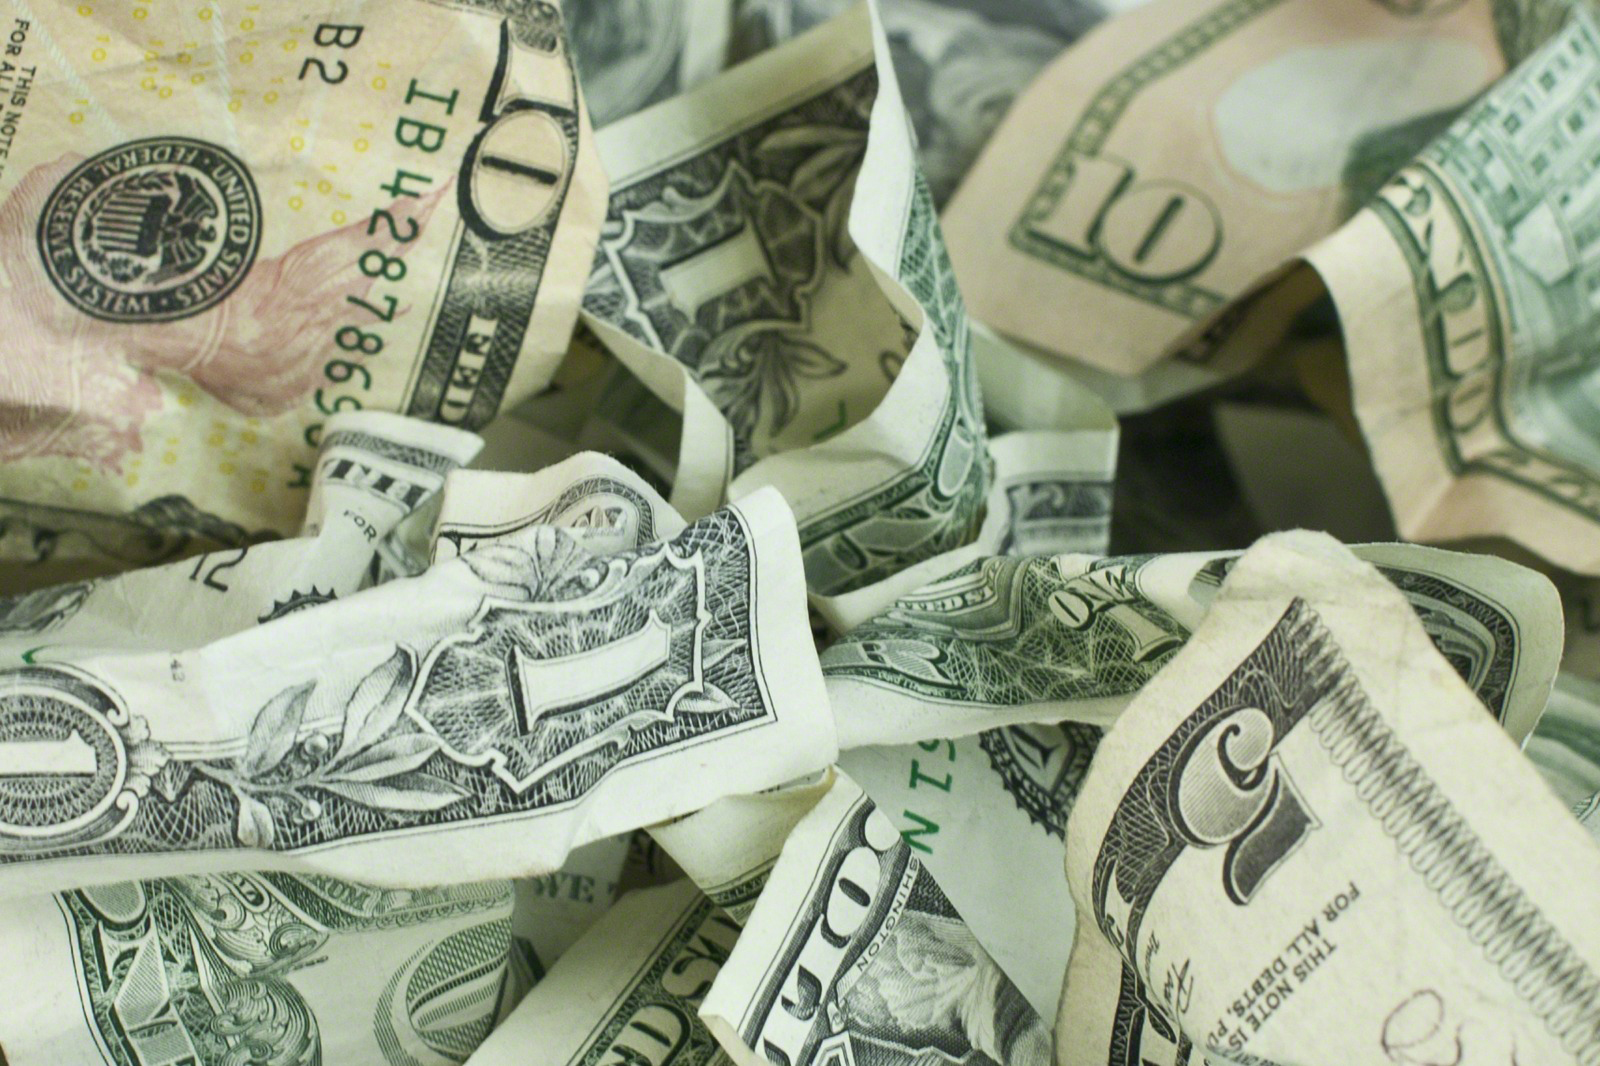 Crumpled money image from lds.org